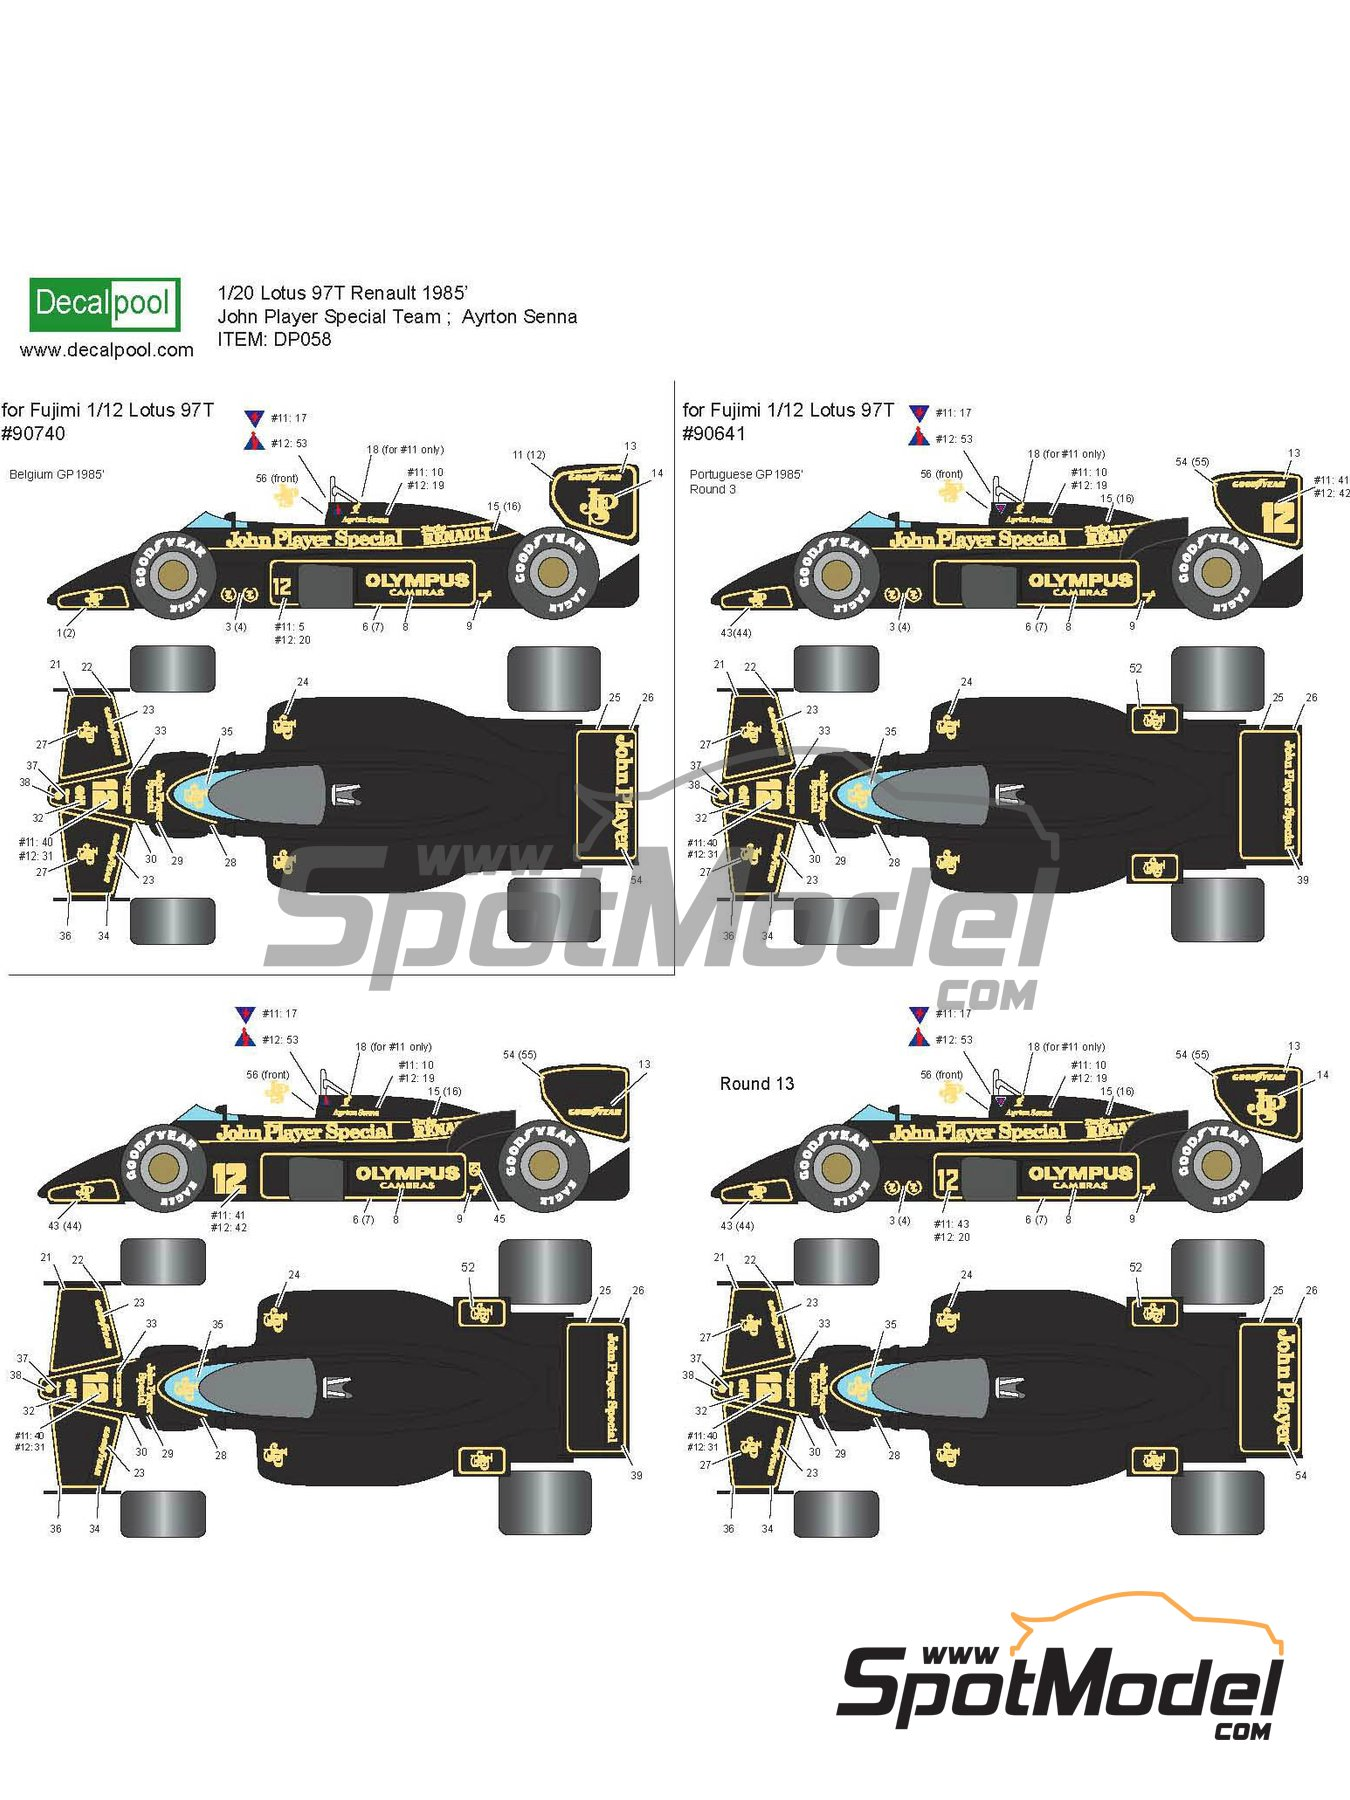 Lotus Renault 97T John Player Special - Belgian Formula 1 Grand Prix, Portuguese Formula 1 Grand Prix 1985 | Marking / livery in 1/20 scale manufactured by Decalpool (ref.DP058) image